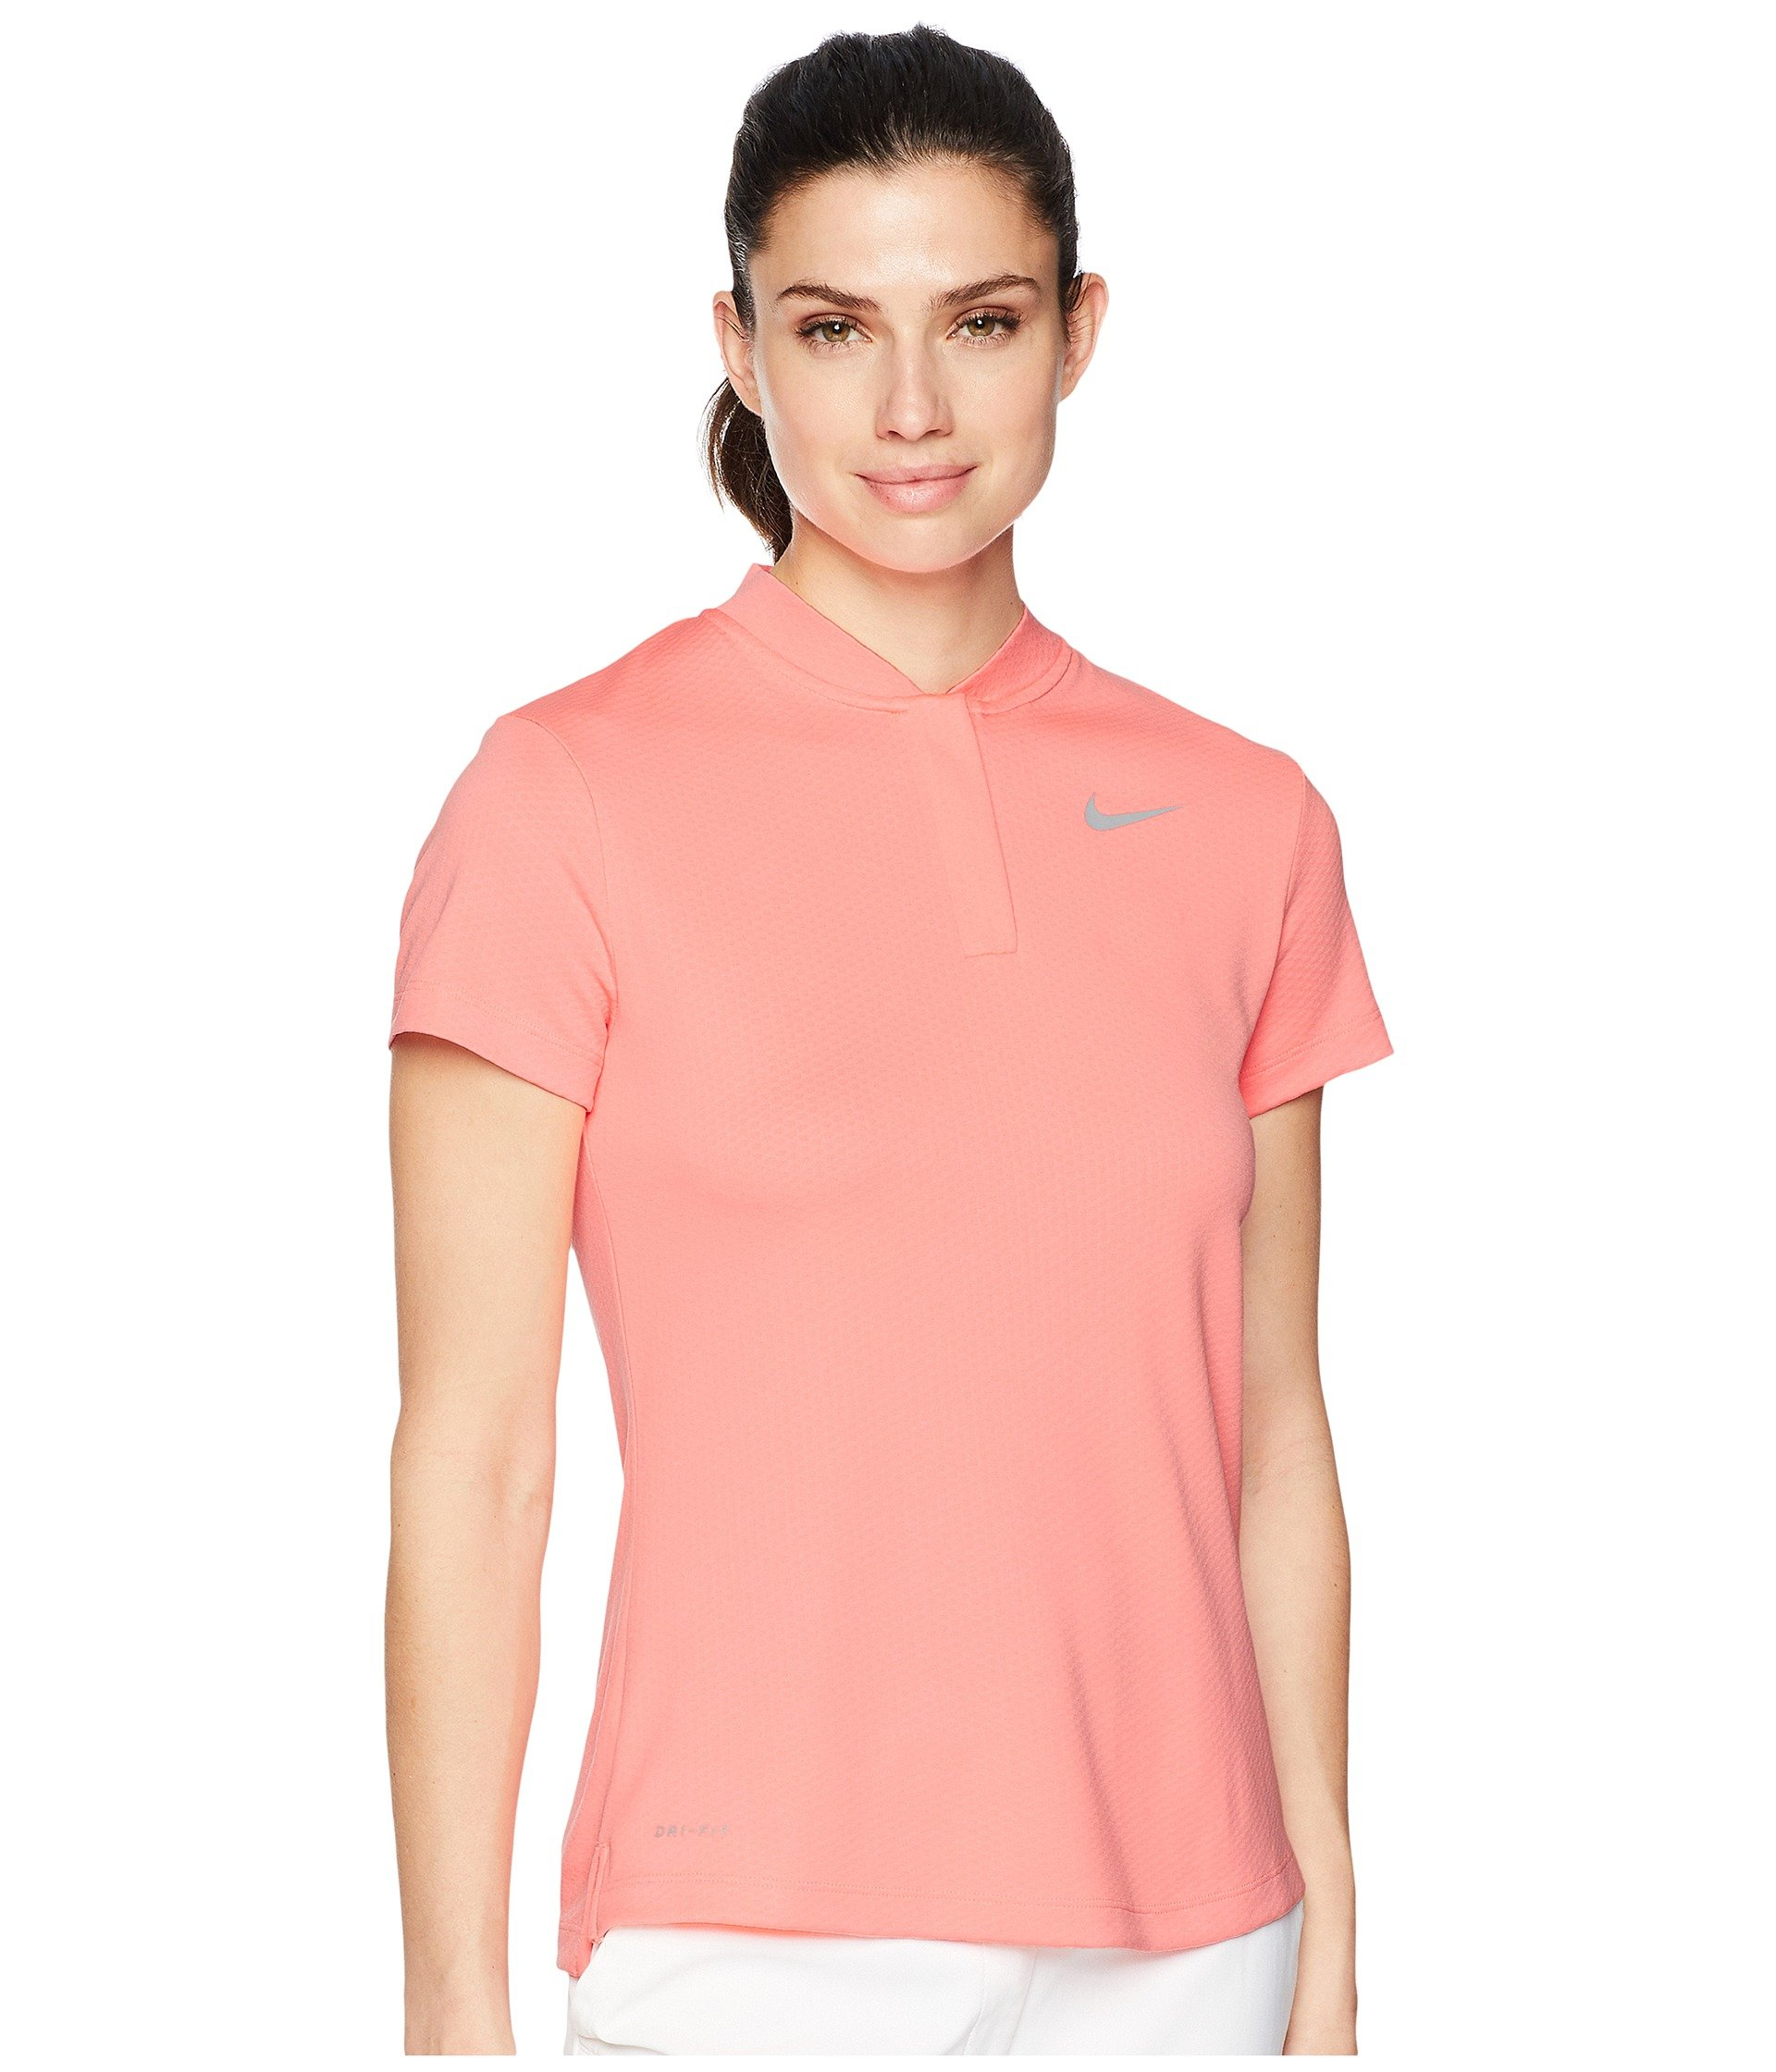 Nike Dri Fit Shortsleeve Blade Collar LC Golf Polo 2018 Women Light Atomic Pink/Flat Silver X-Small